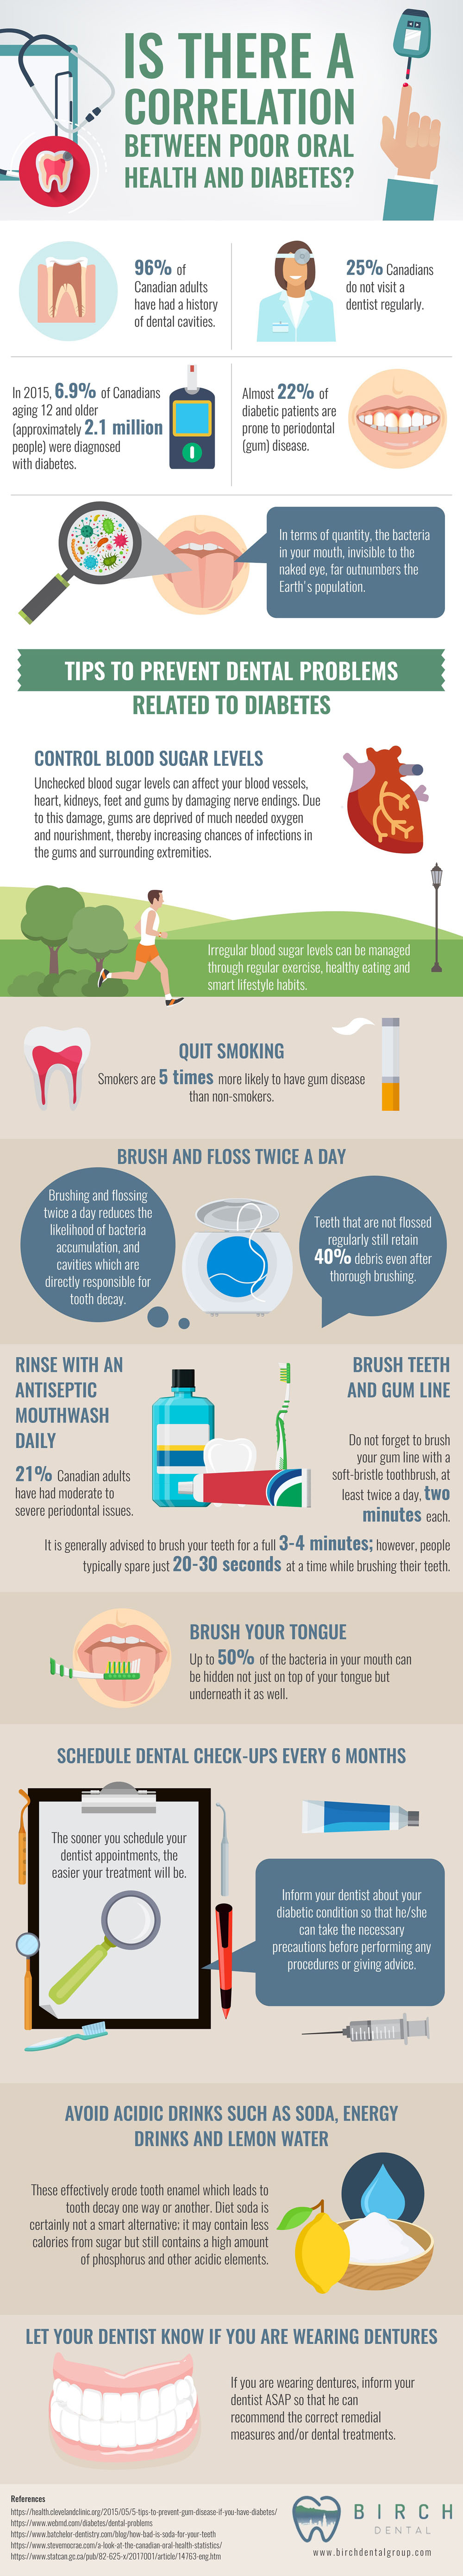 Correlation Between Poor Oral Health & Diabetes